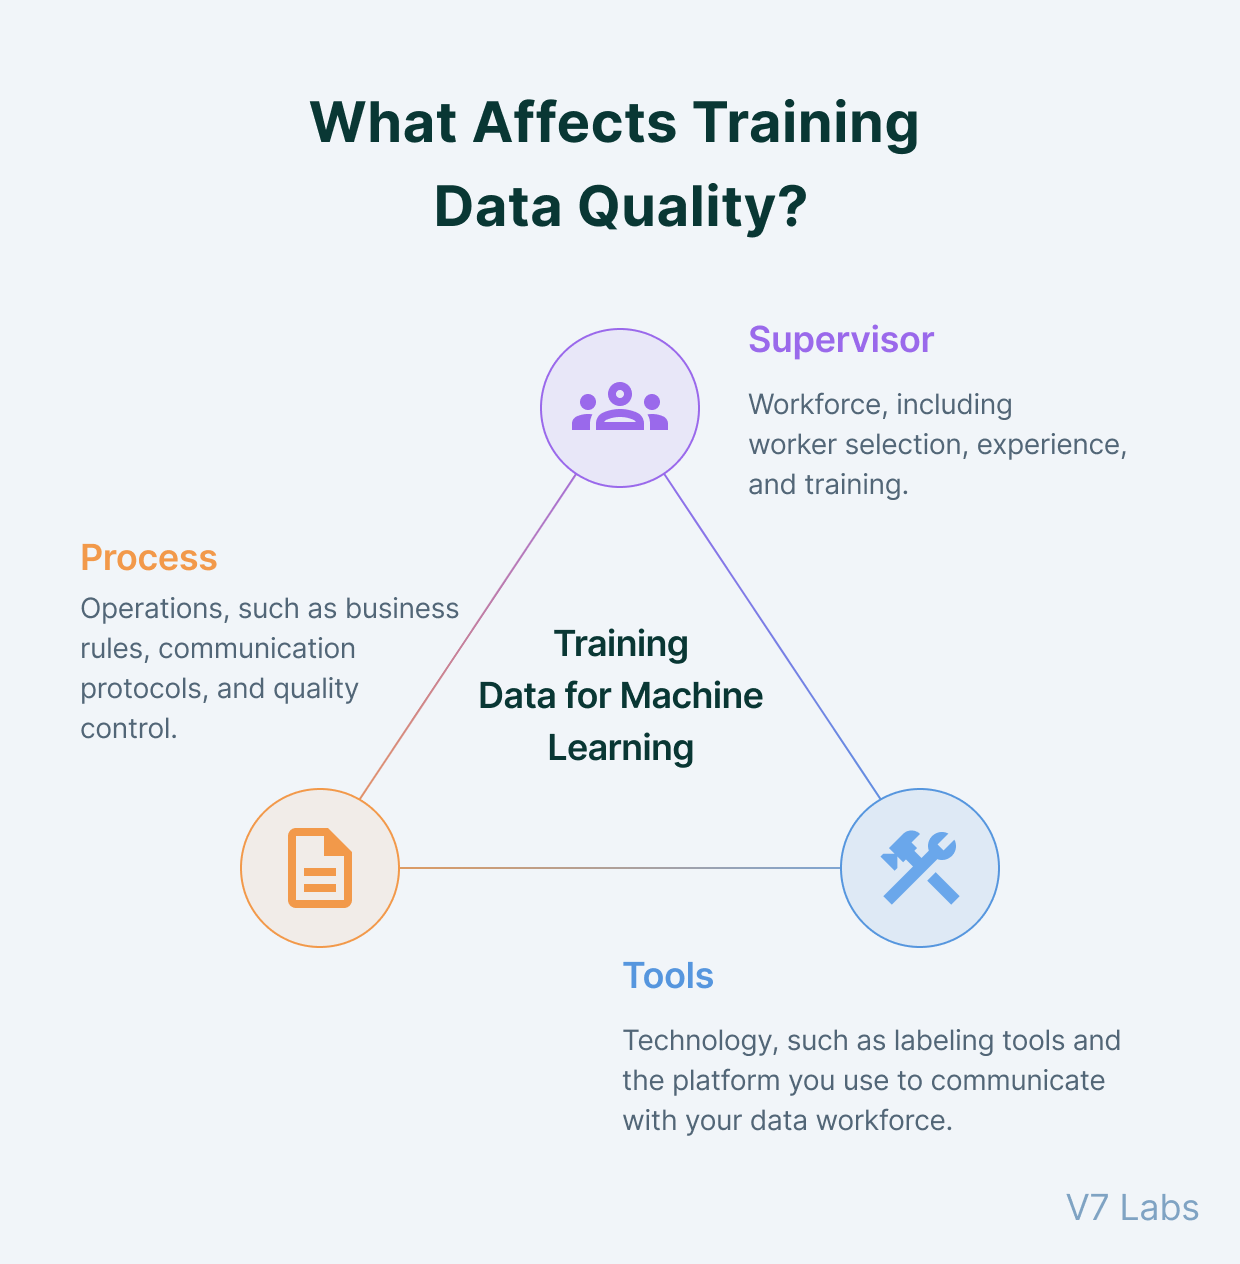 What affects training data quality